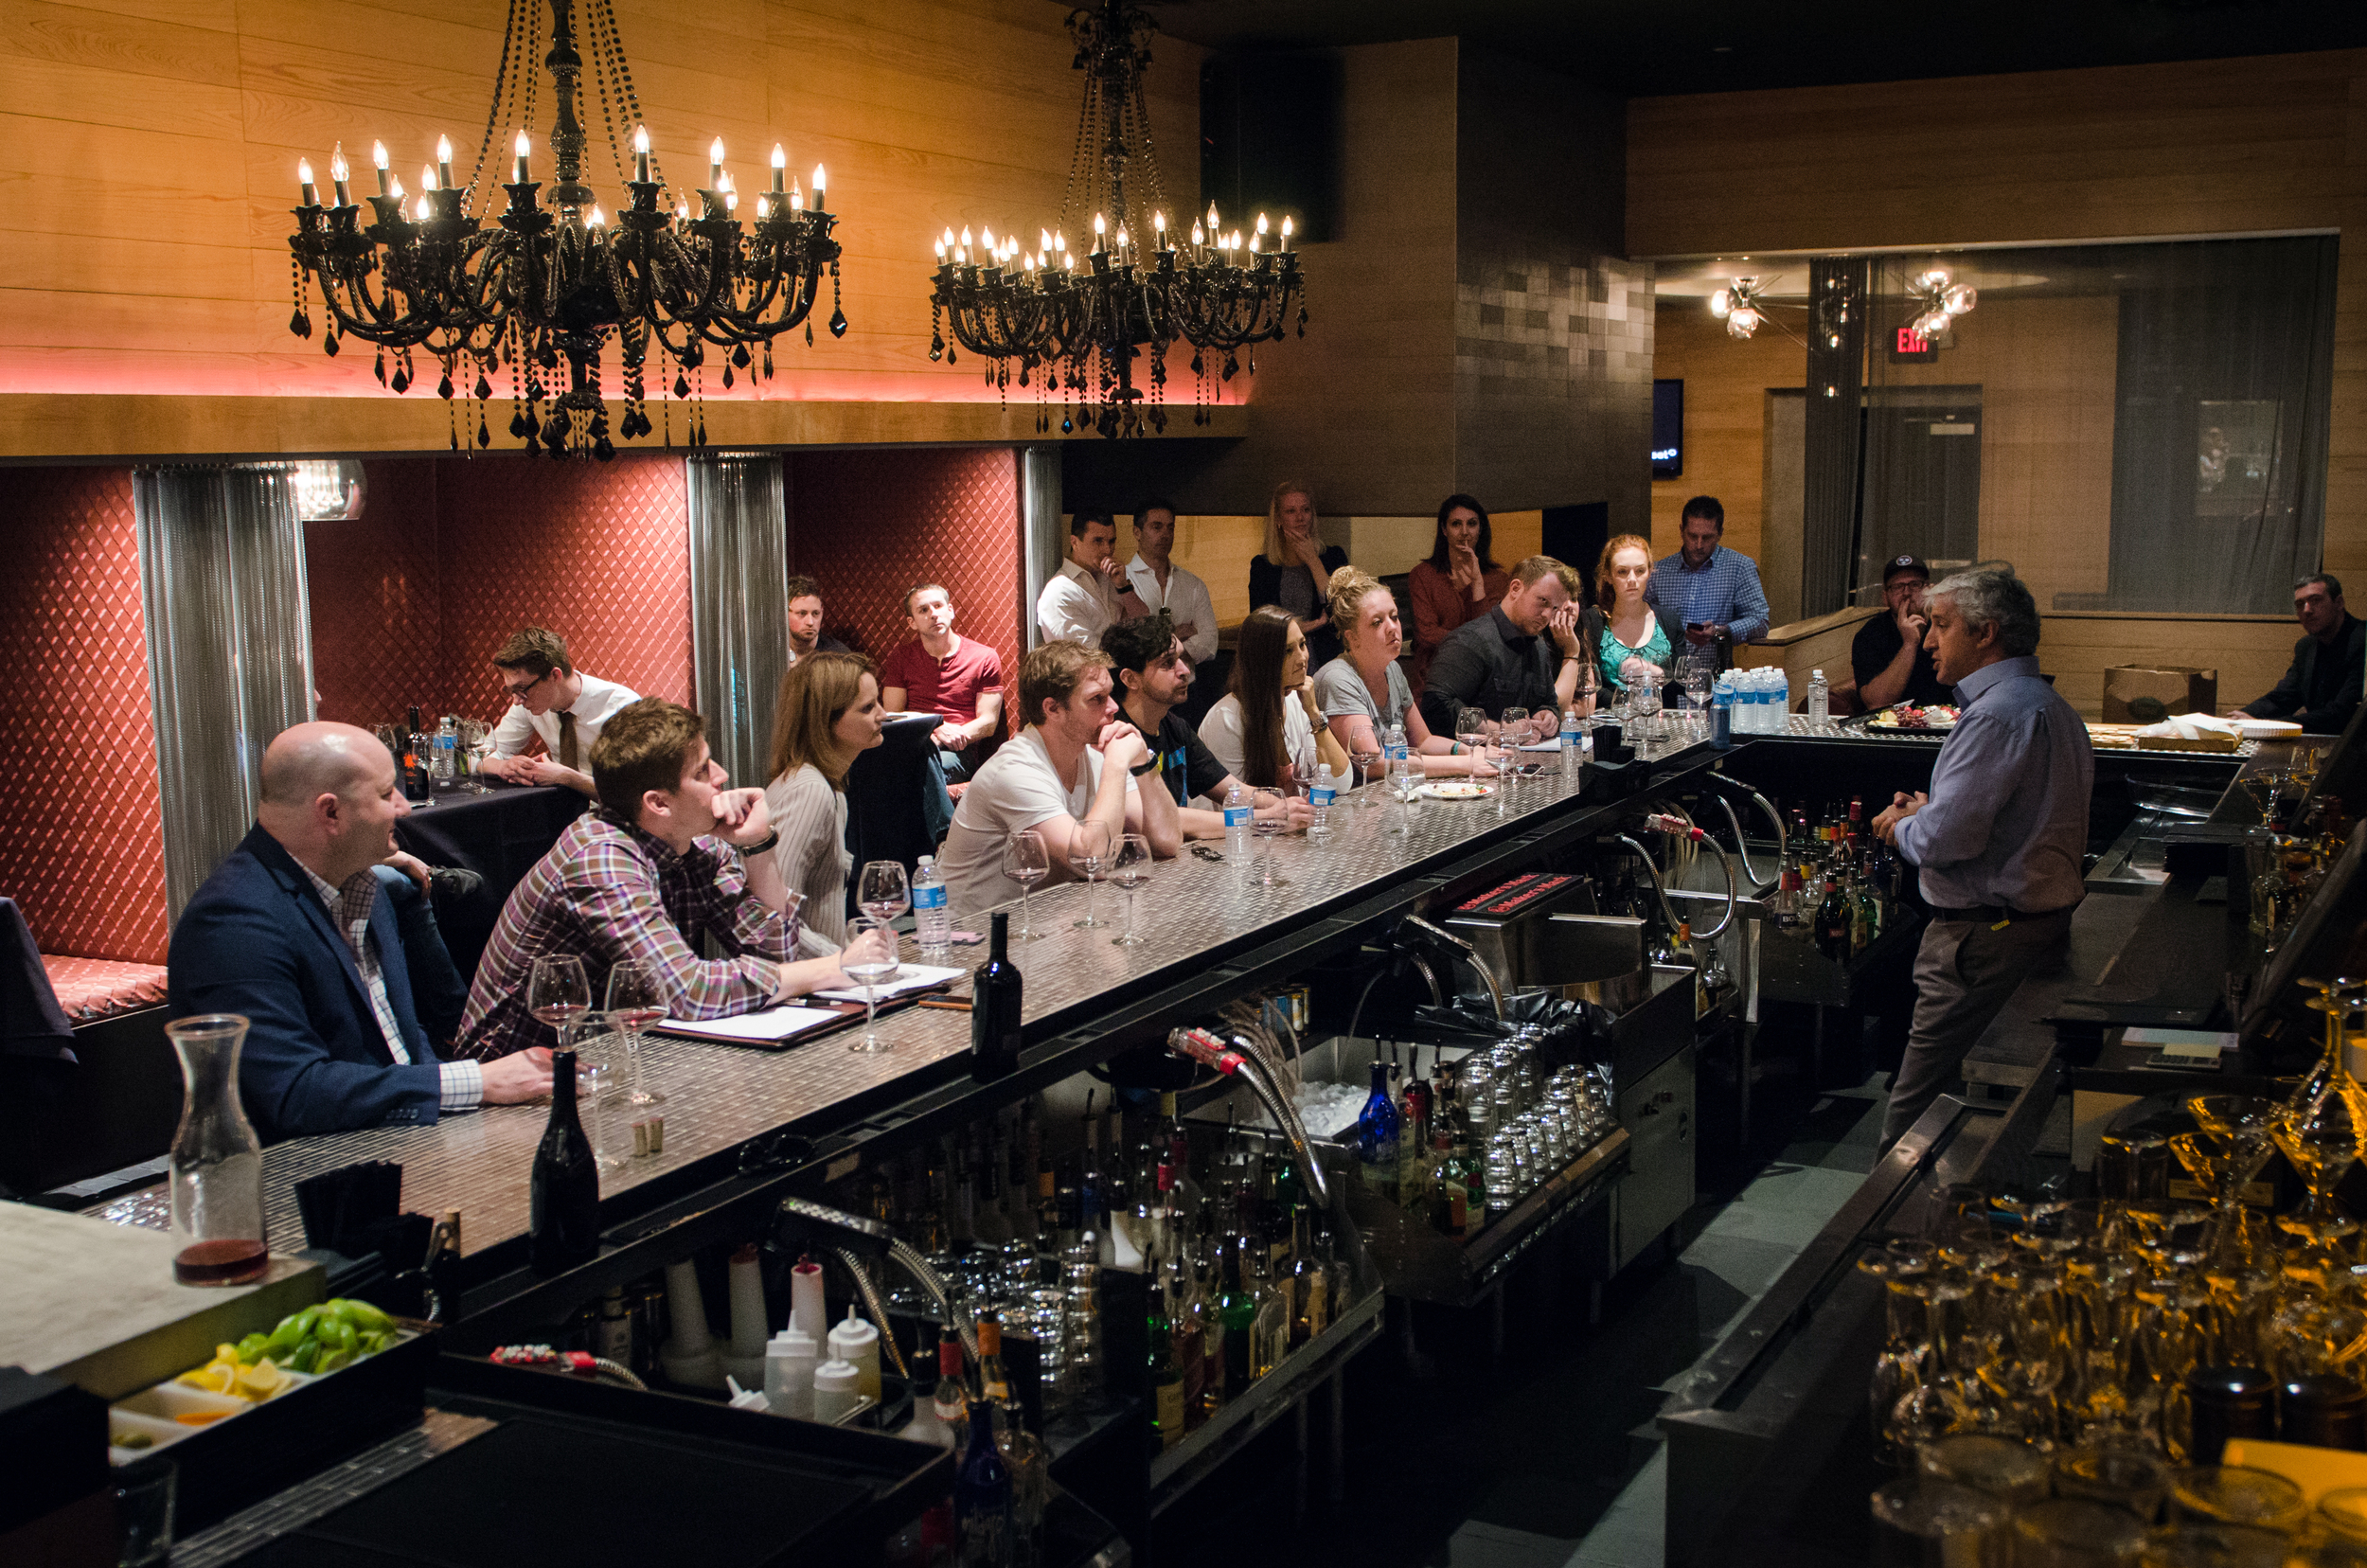 Employees taking tasting notes during the tasting